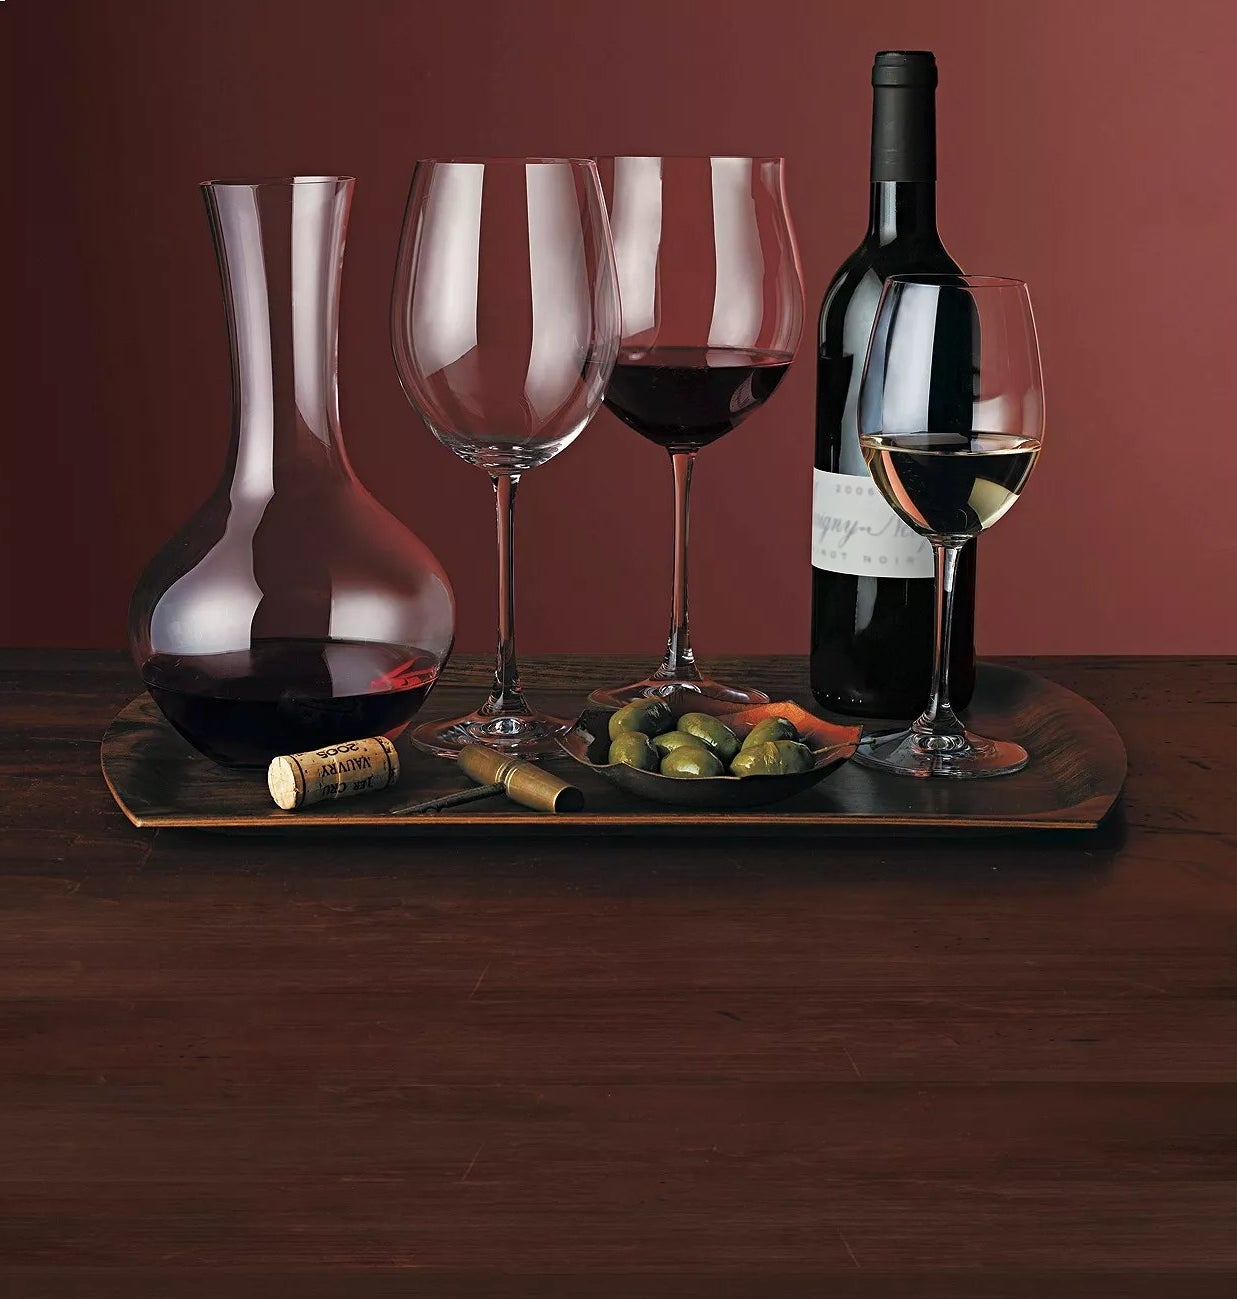 A variety of Riedel wine glasses and a decanter